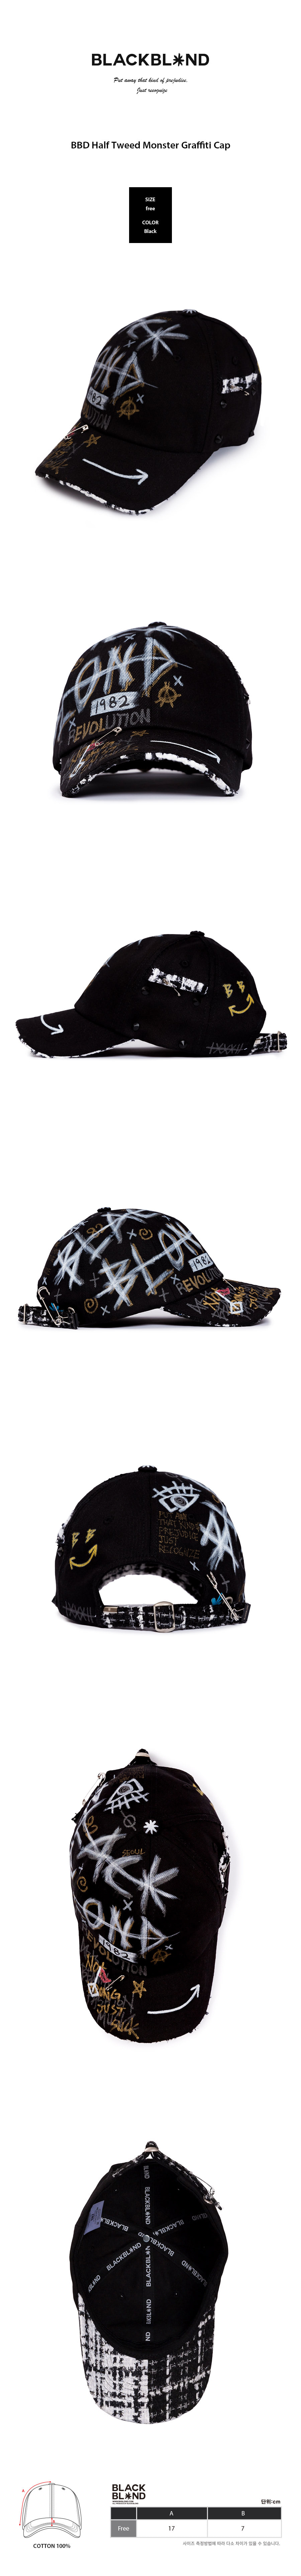 BBD-Half-Tweed-Monster-Graffiti-Cap-%28Black%29.jpg